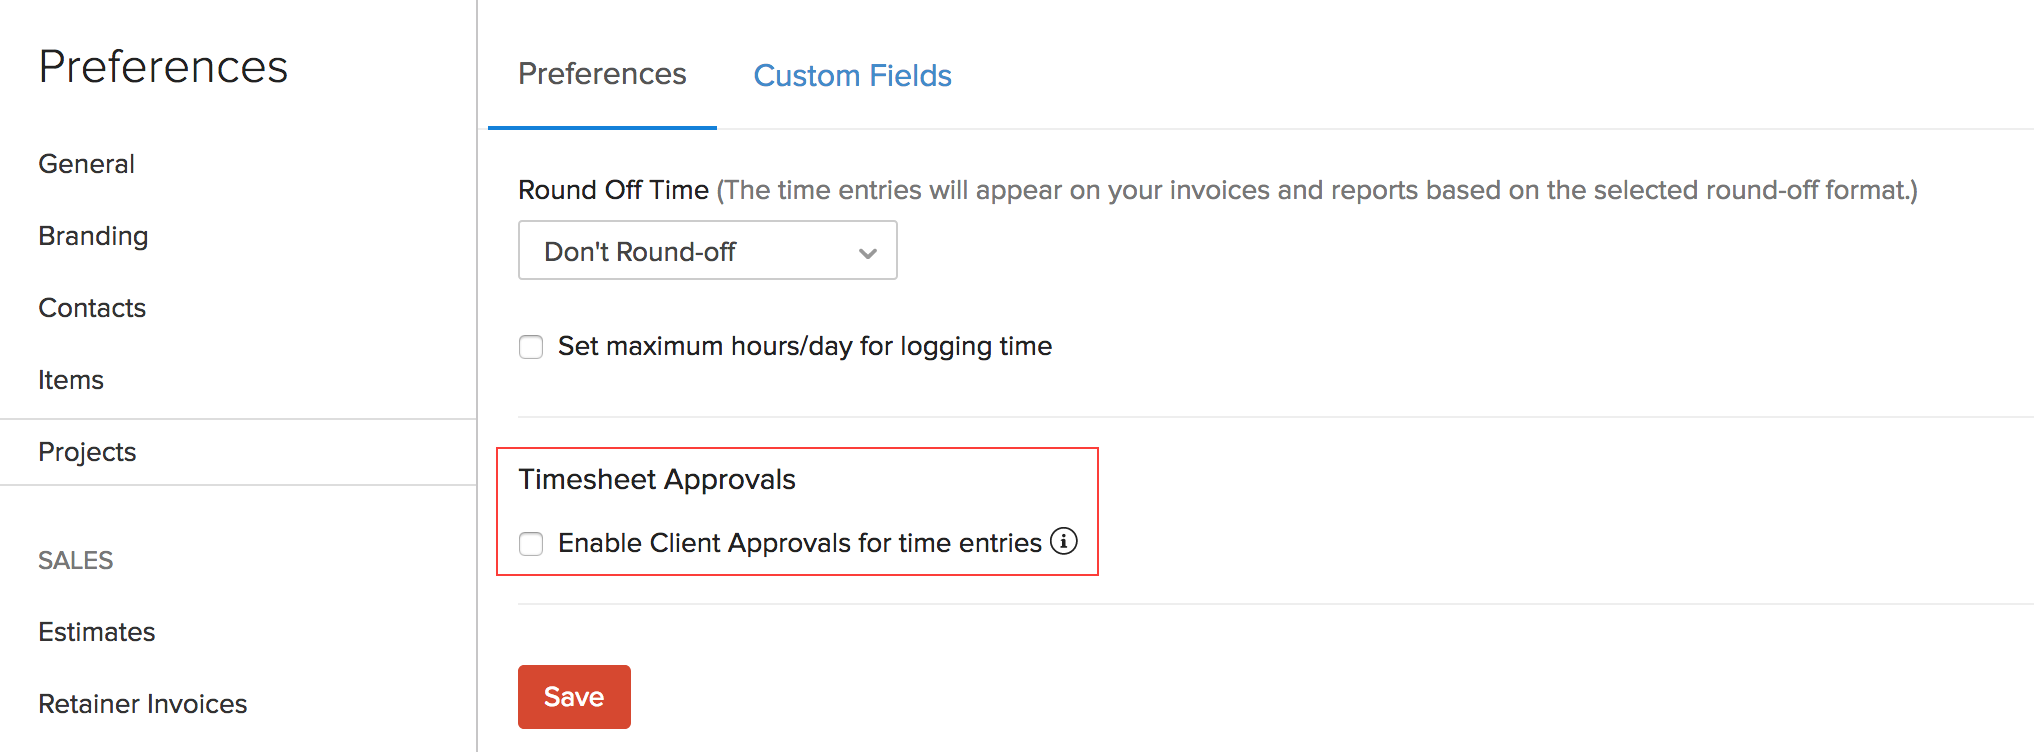 Other Actions in Client Approvals